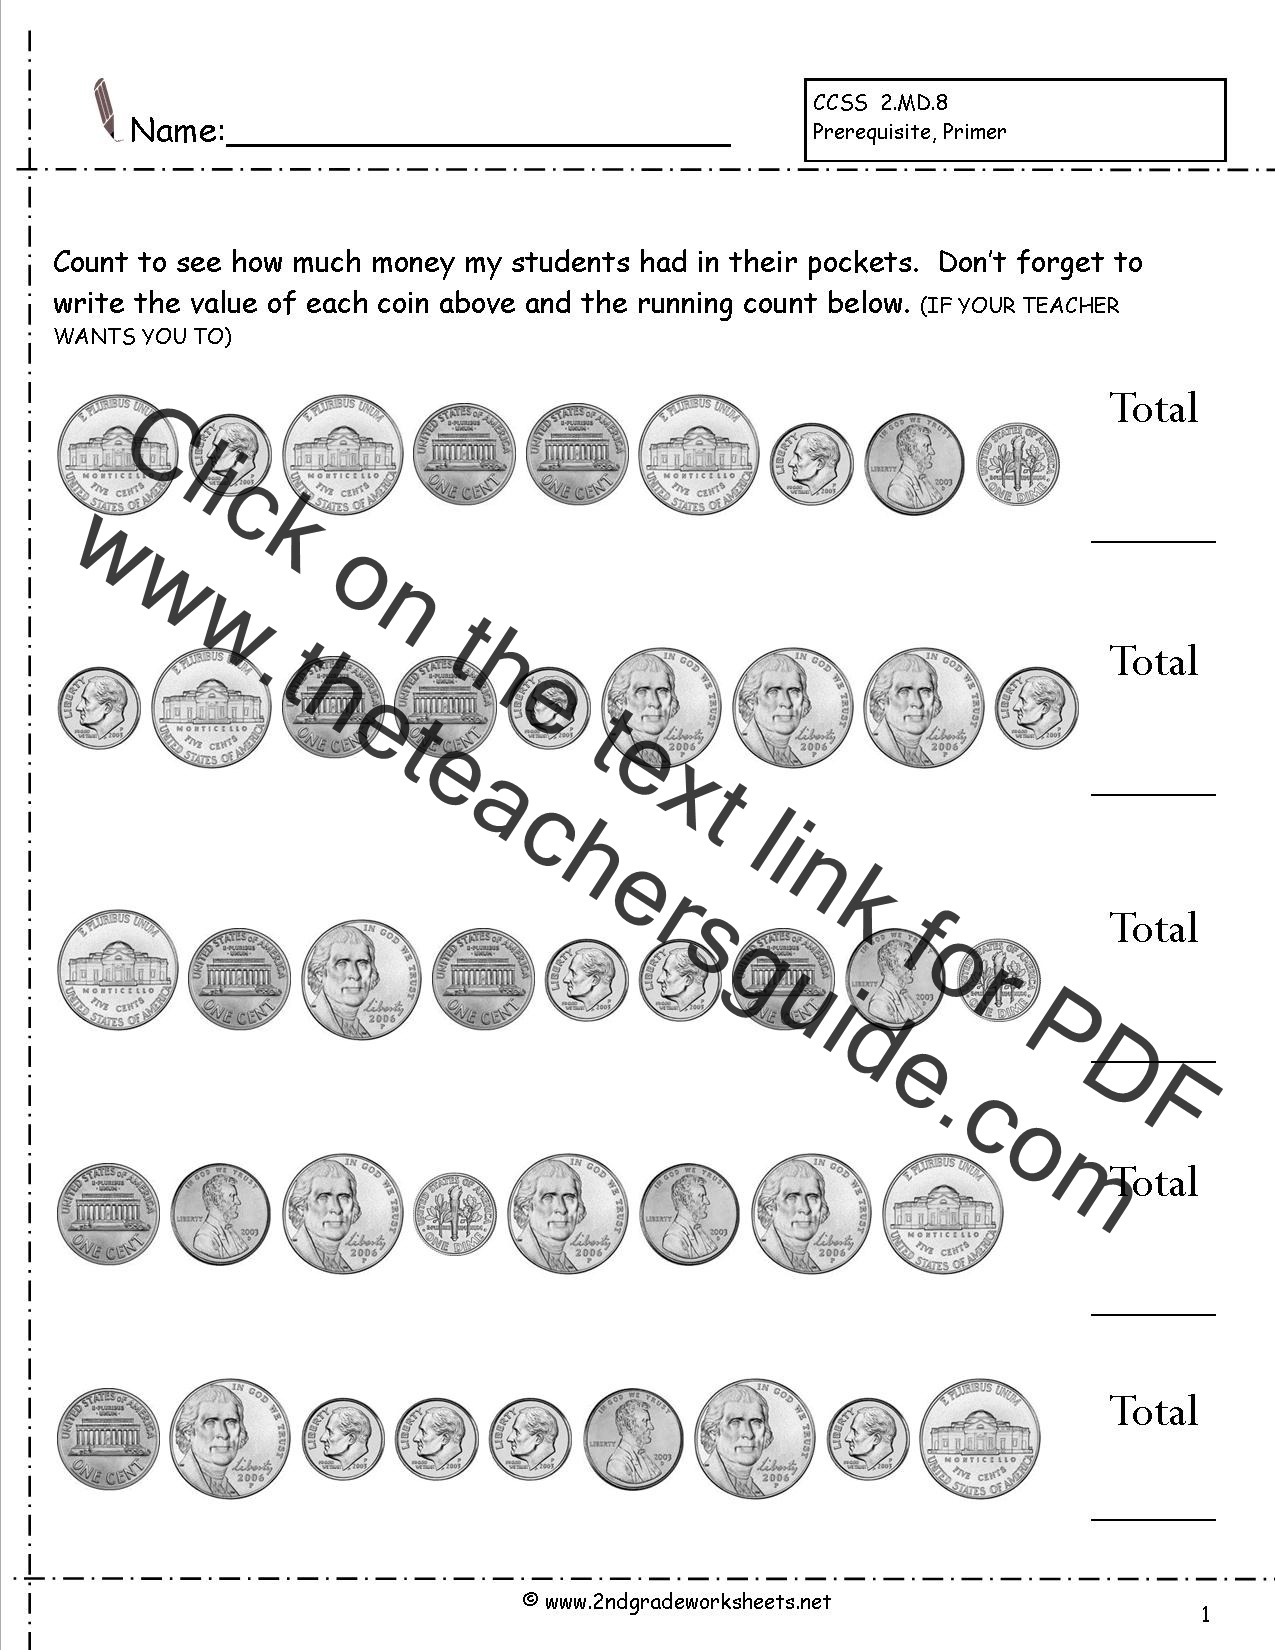 Worksheet First Grade Counting Money ccss 2 md 8 worksheets counting coins money worksheet